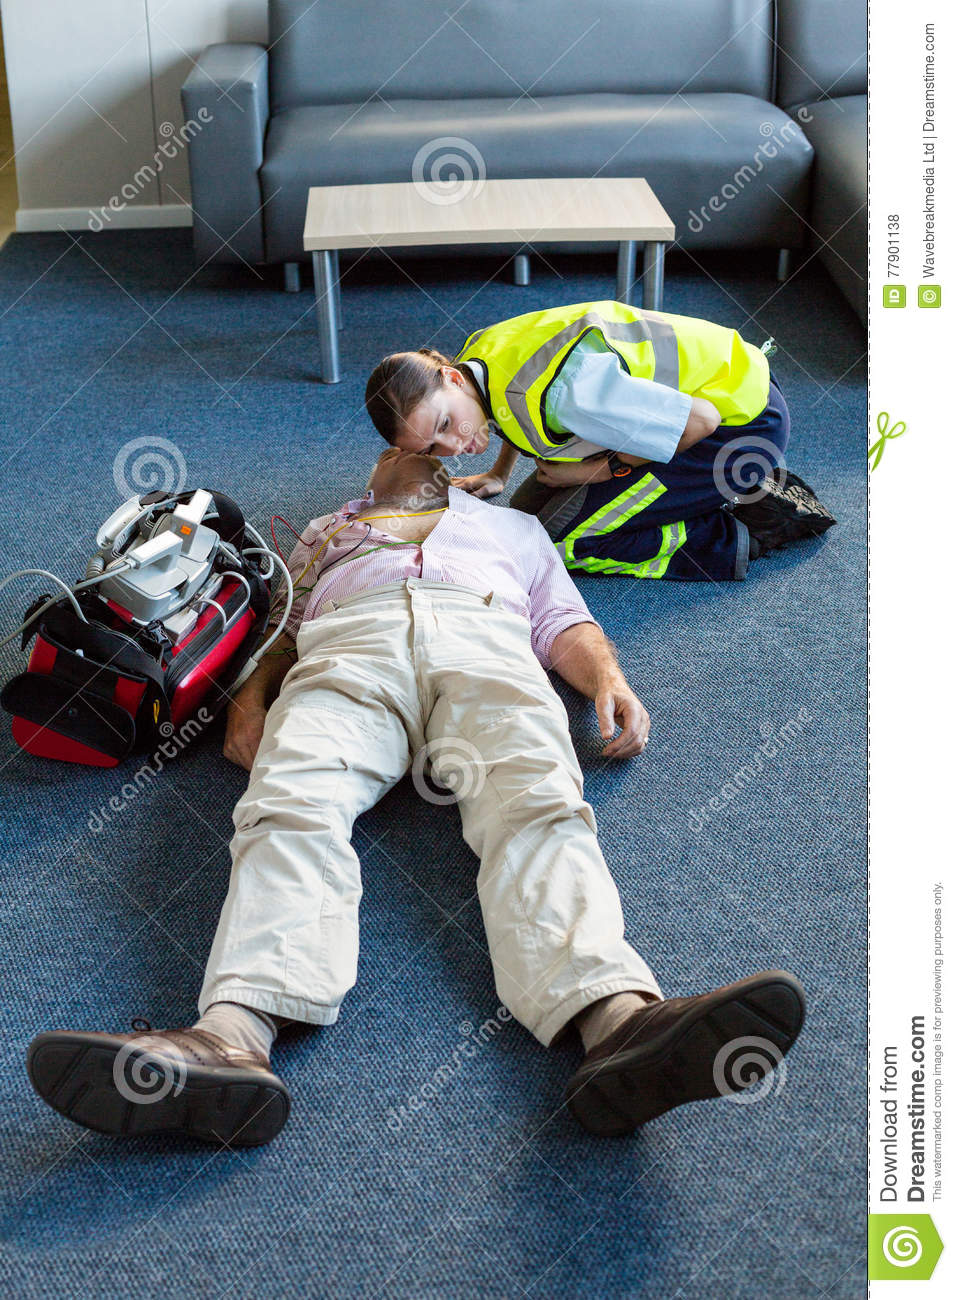 Download Female Paramedic During Cardiopulmonary Resuscitation Training Stock Photo - Image of doctor, heart: 77901138